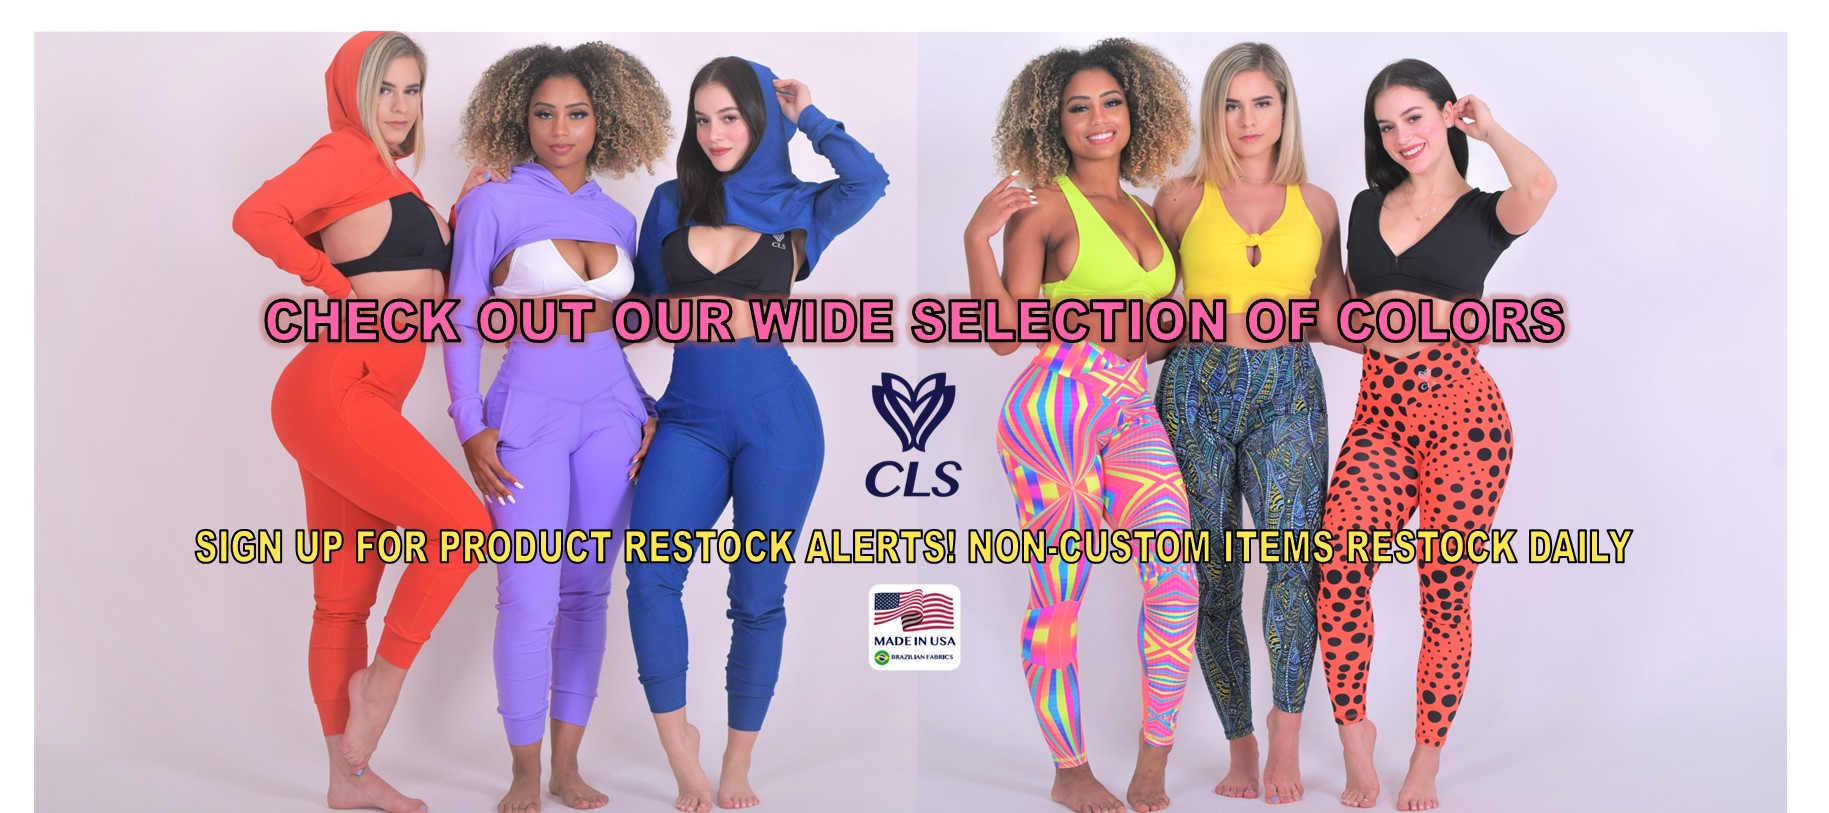 https://www.clssportswear.com/wp-content/uploads/2020/06/Announce_Slider_WideSelectionColors.jpg